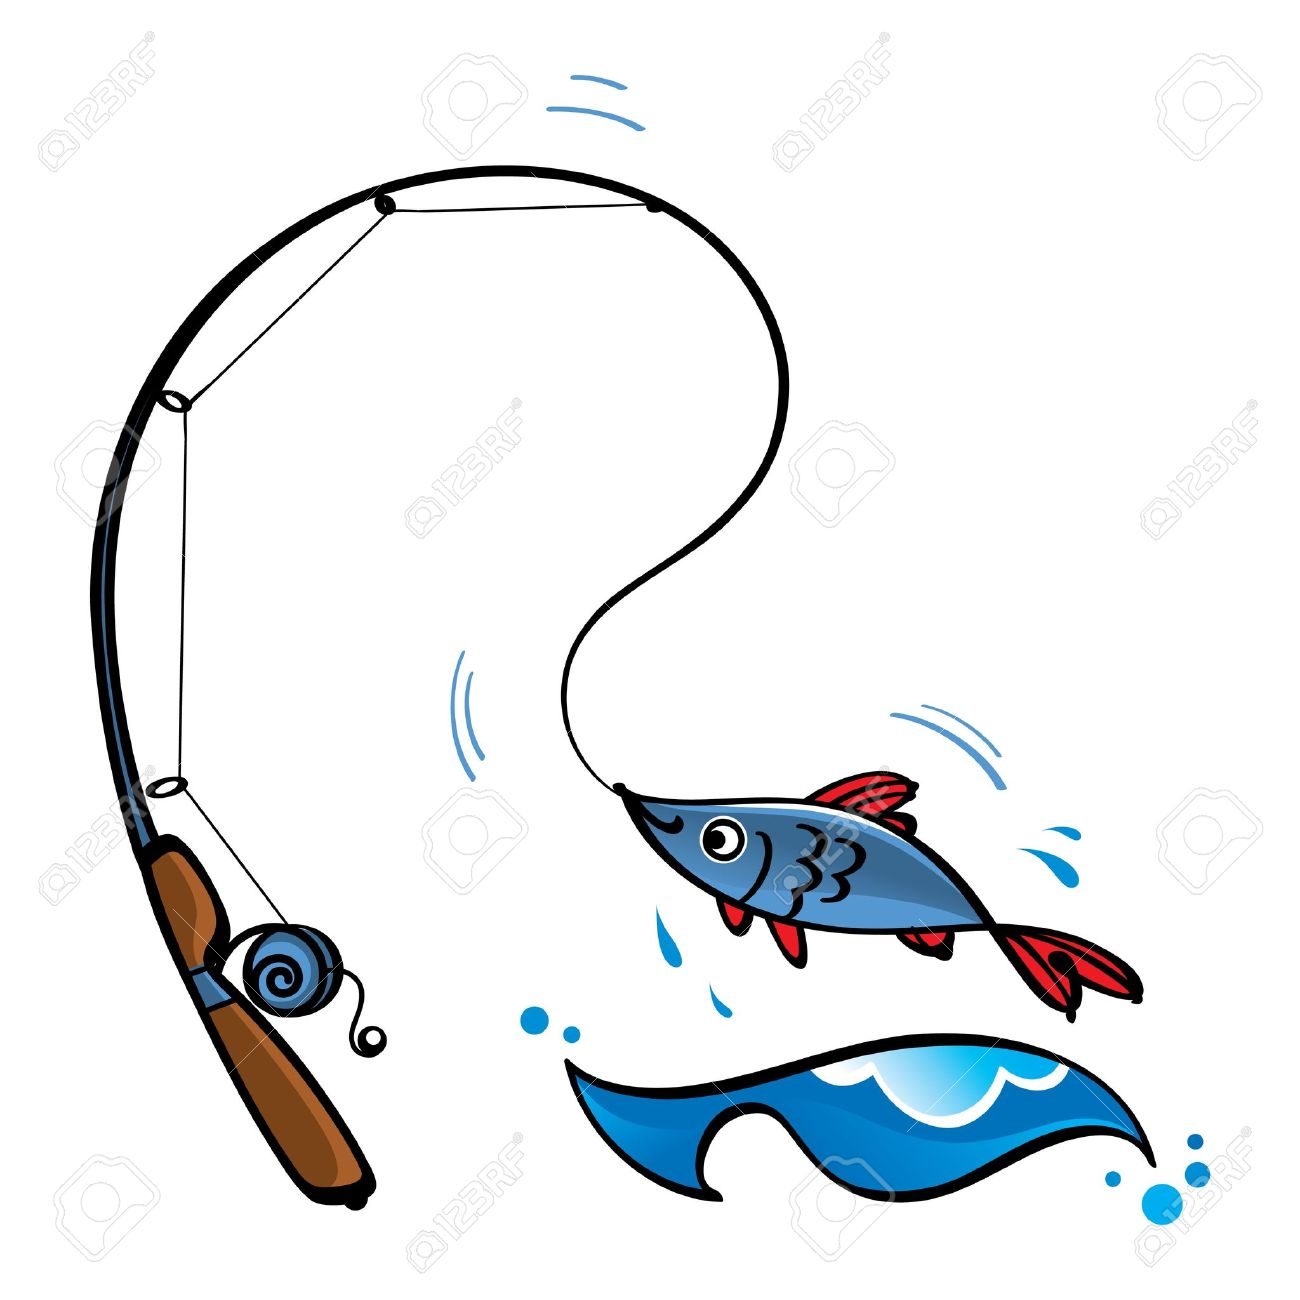 1300x1300 In A River Fishing Pole Clipart, Explore Pictures